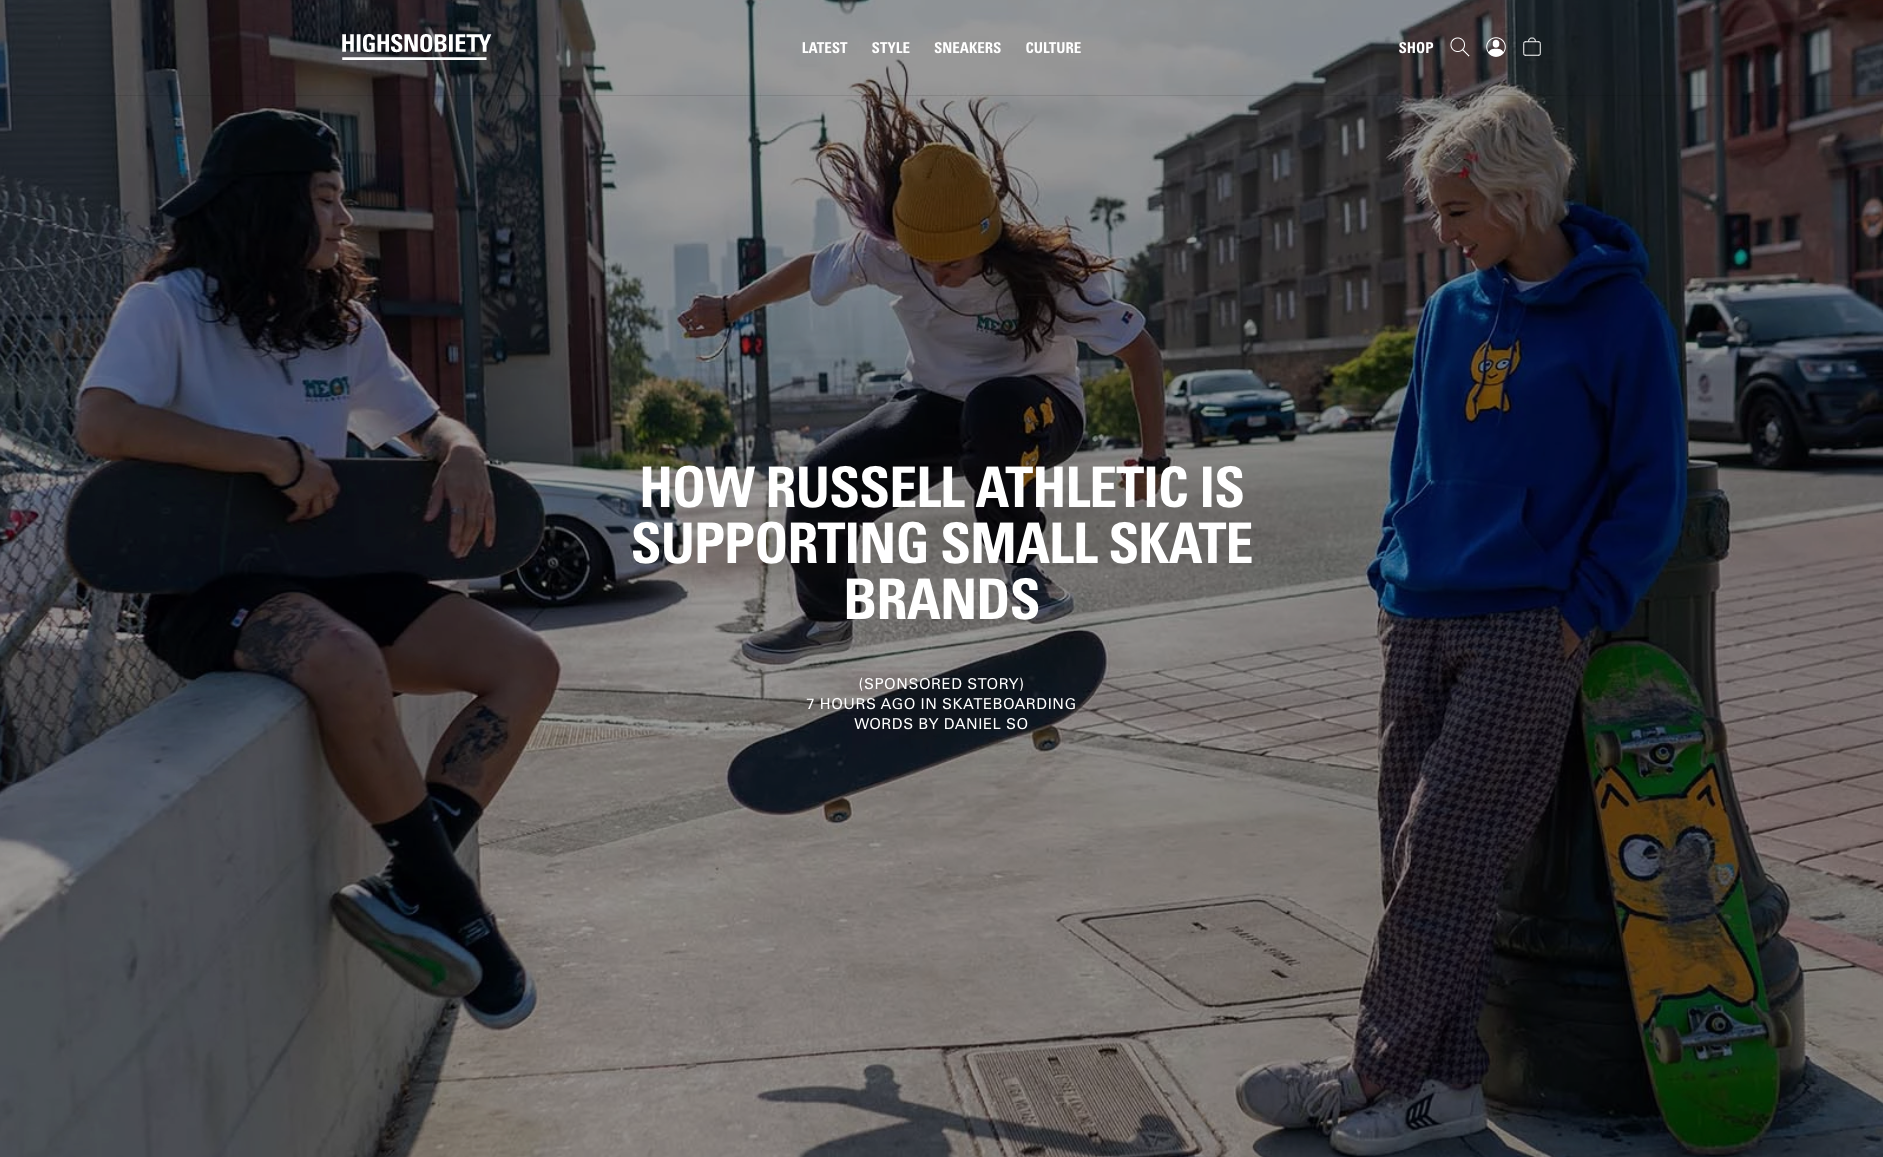 Meow Skateboards x Russell Athletic